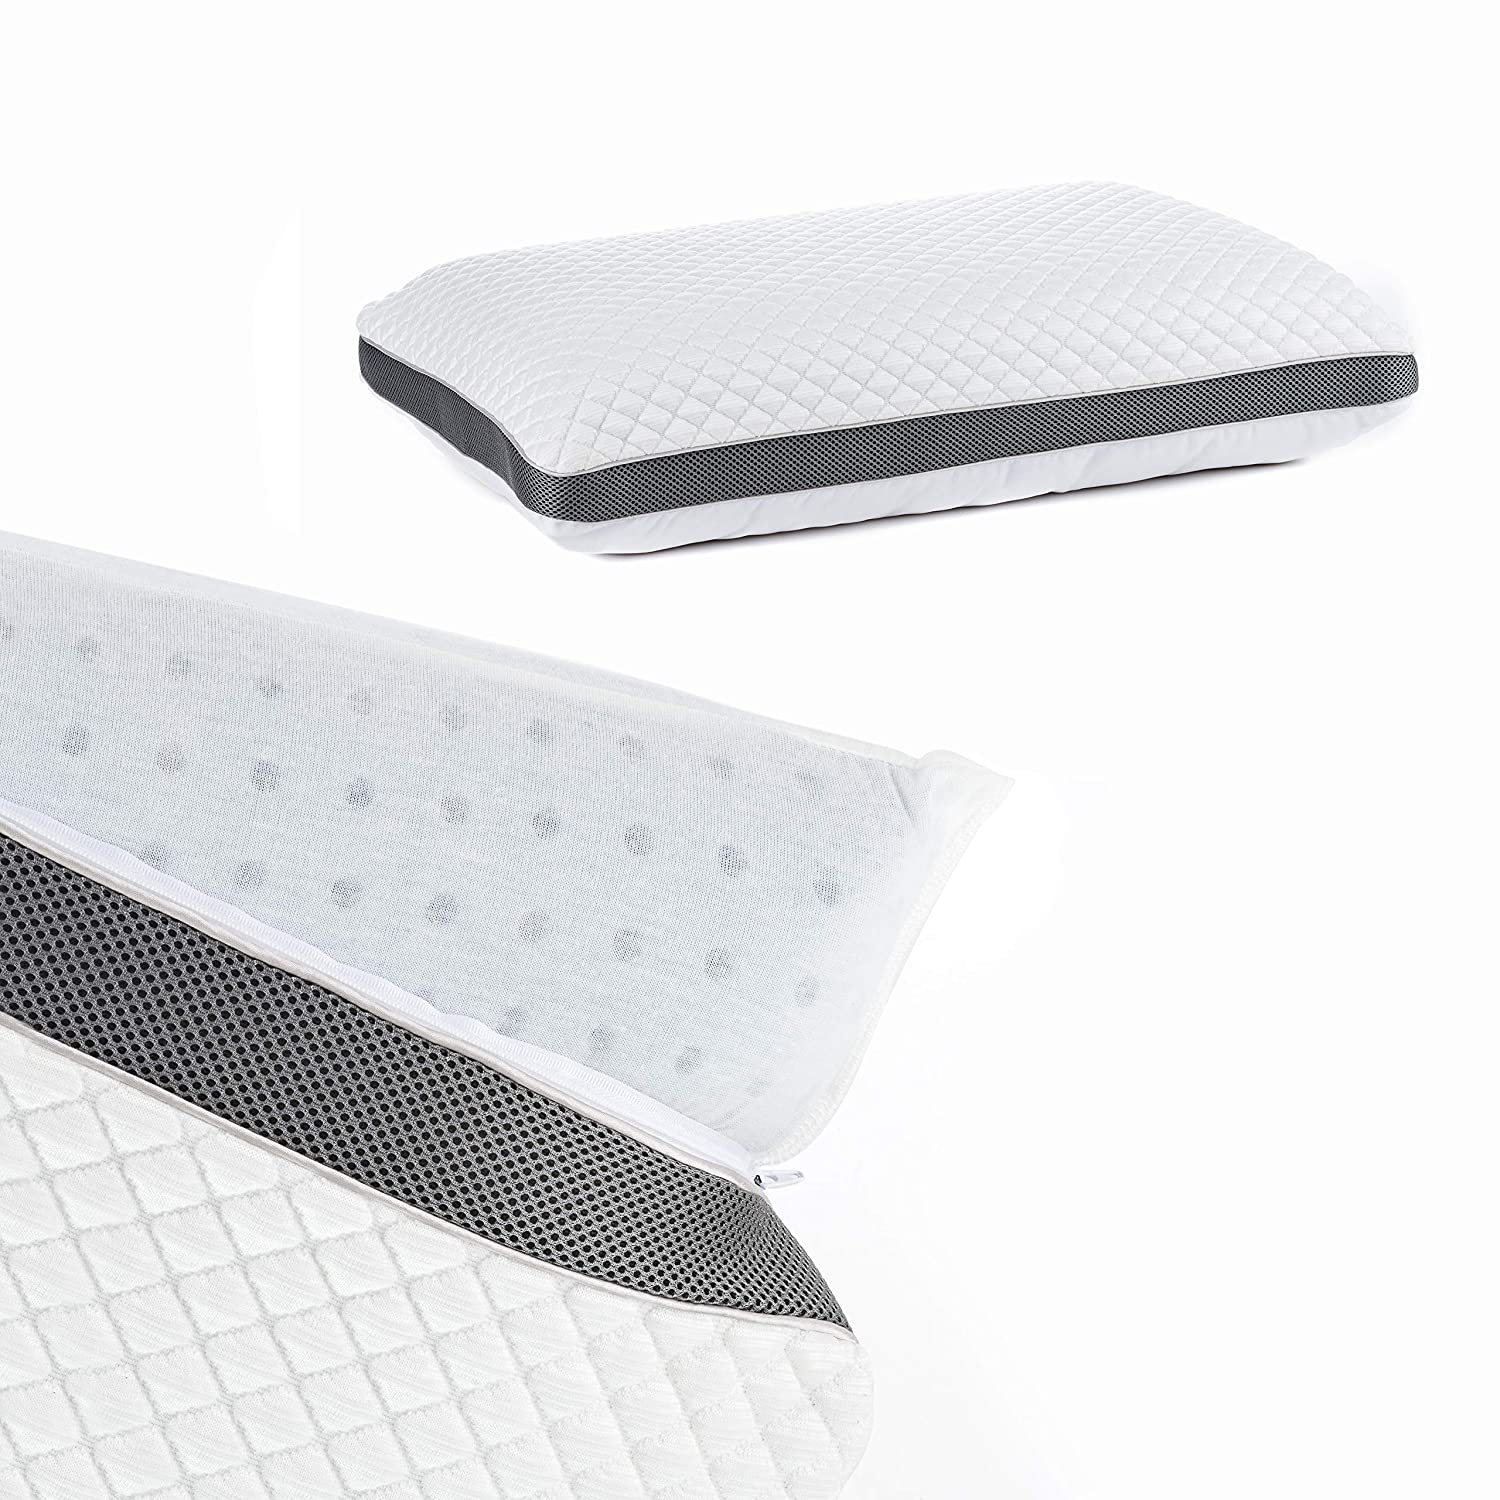 Perfect Cloud Cooling Pillow for Sleeping Diamond Rest Gel is The Best Rated Cool Pillow for Hot Sleepers